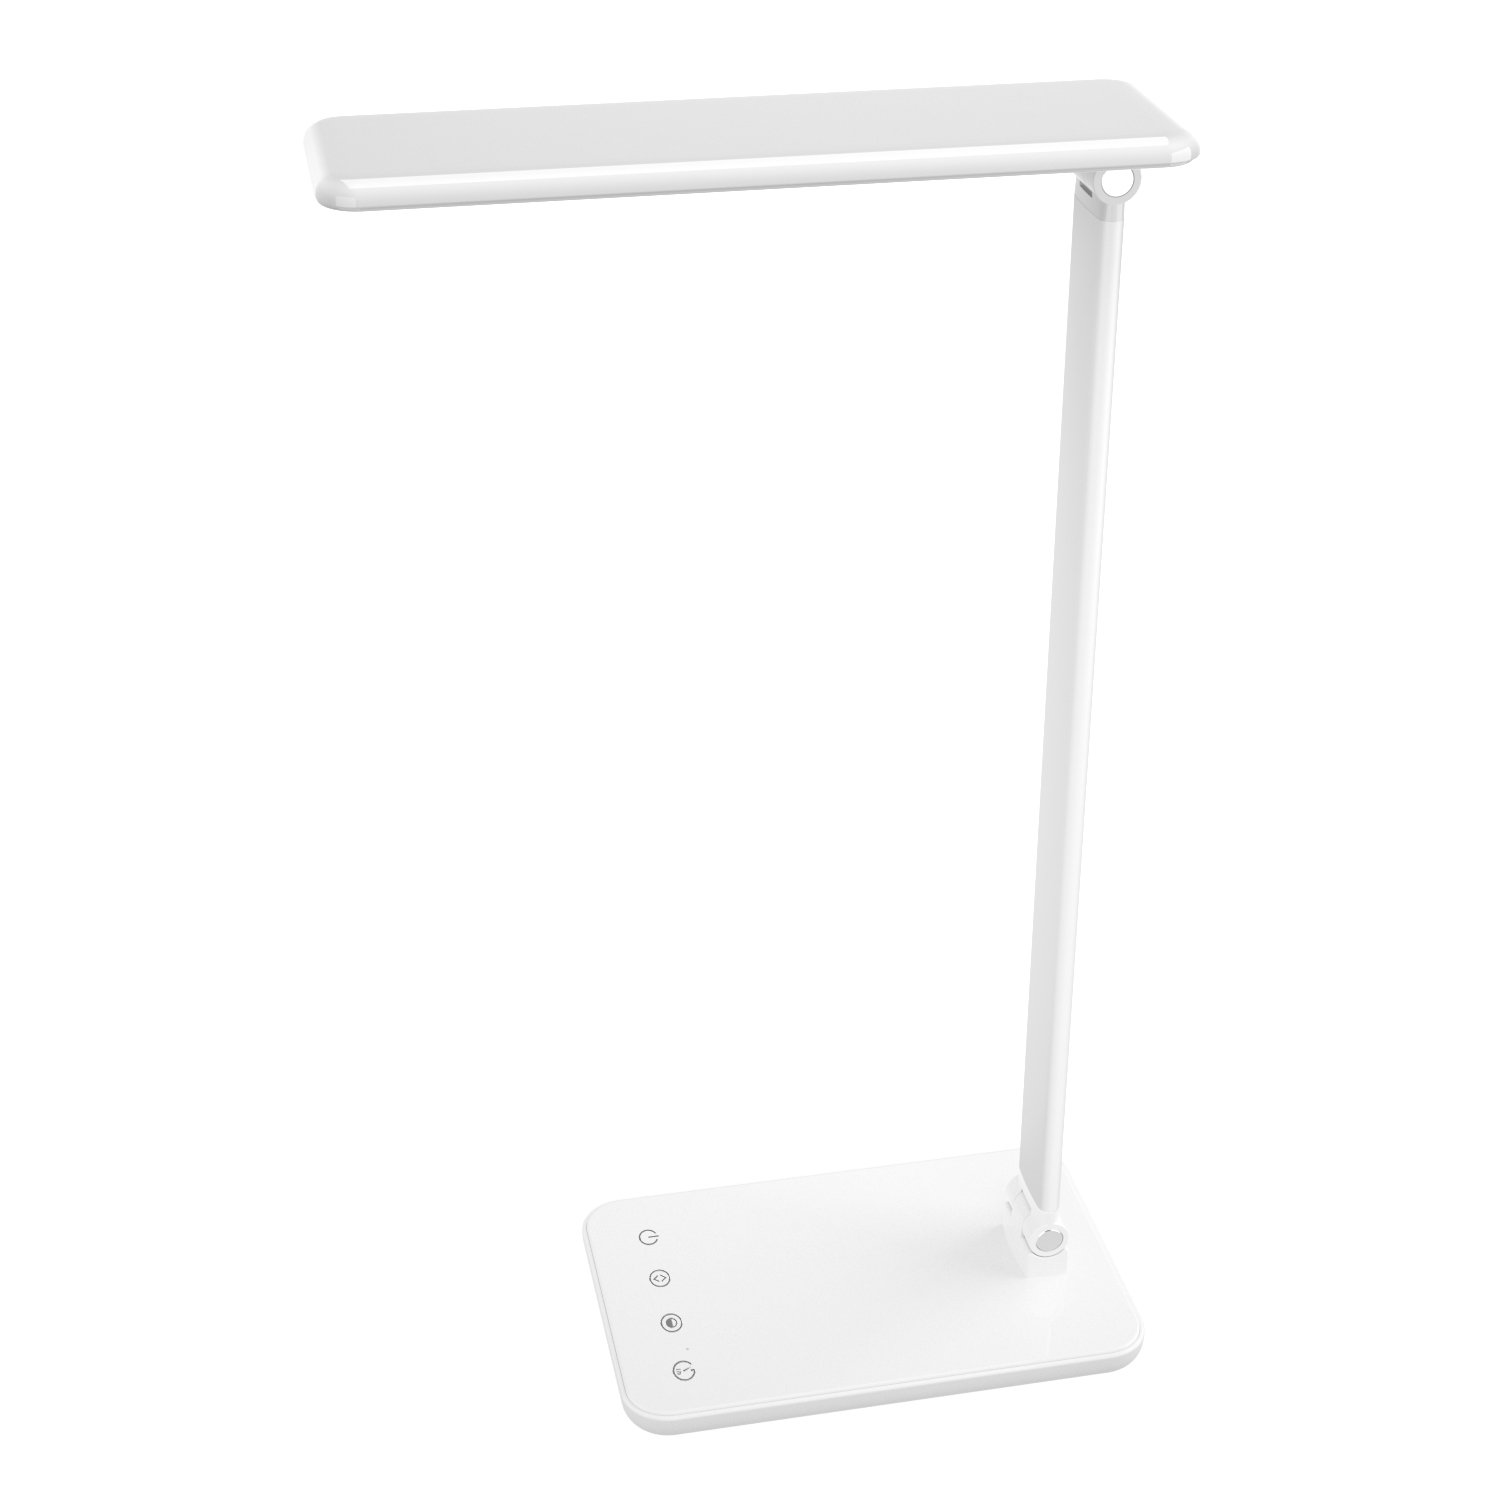 MoKo Dimmable LED Desk Lamp, 8W Touch-Sensitive Control Eye-Caring Working / Reading Table Lamp, Continuously Dimmable Brightness & Color Temperature, 1-Hour Auto Timer, Adjustable Arm & Head - WHITE